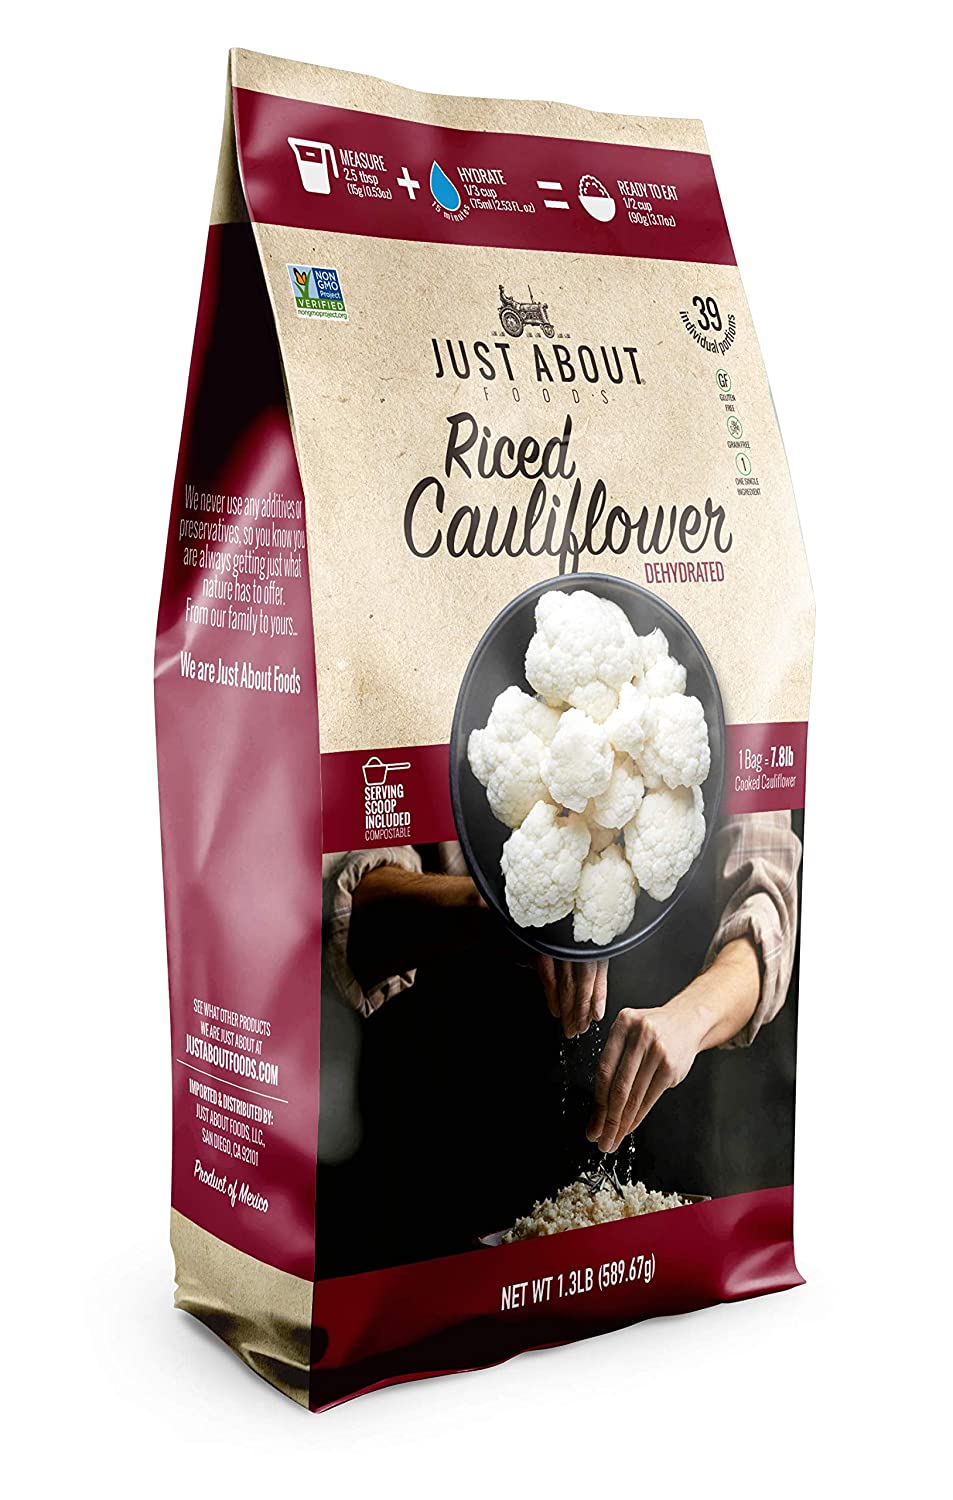 Just About Foods Dehydrated Riced Cauliflower 1.3 lb (590g) Gluten and Grain Free Good Source of Fiber Low Carb Pack of 1